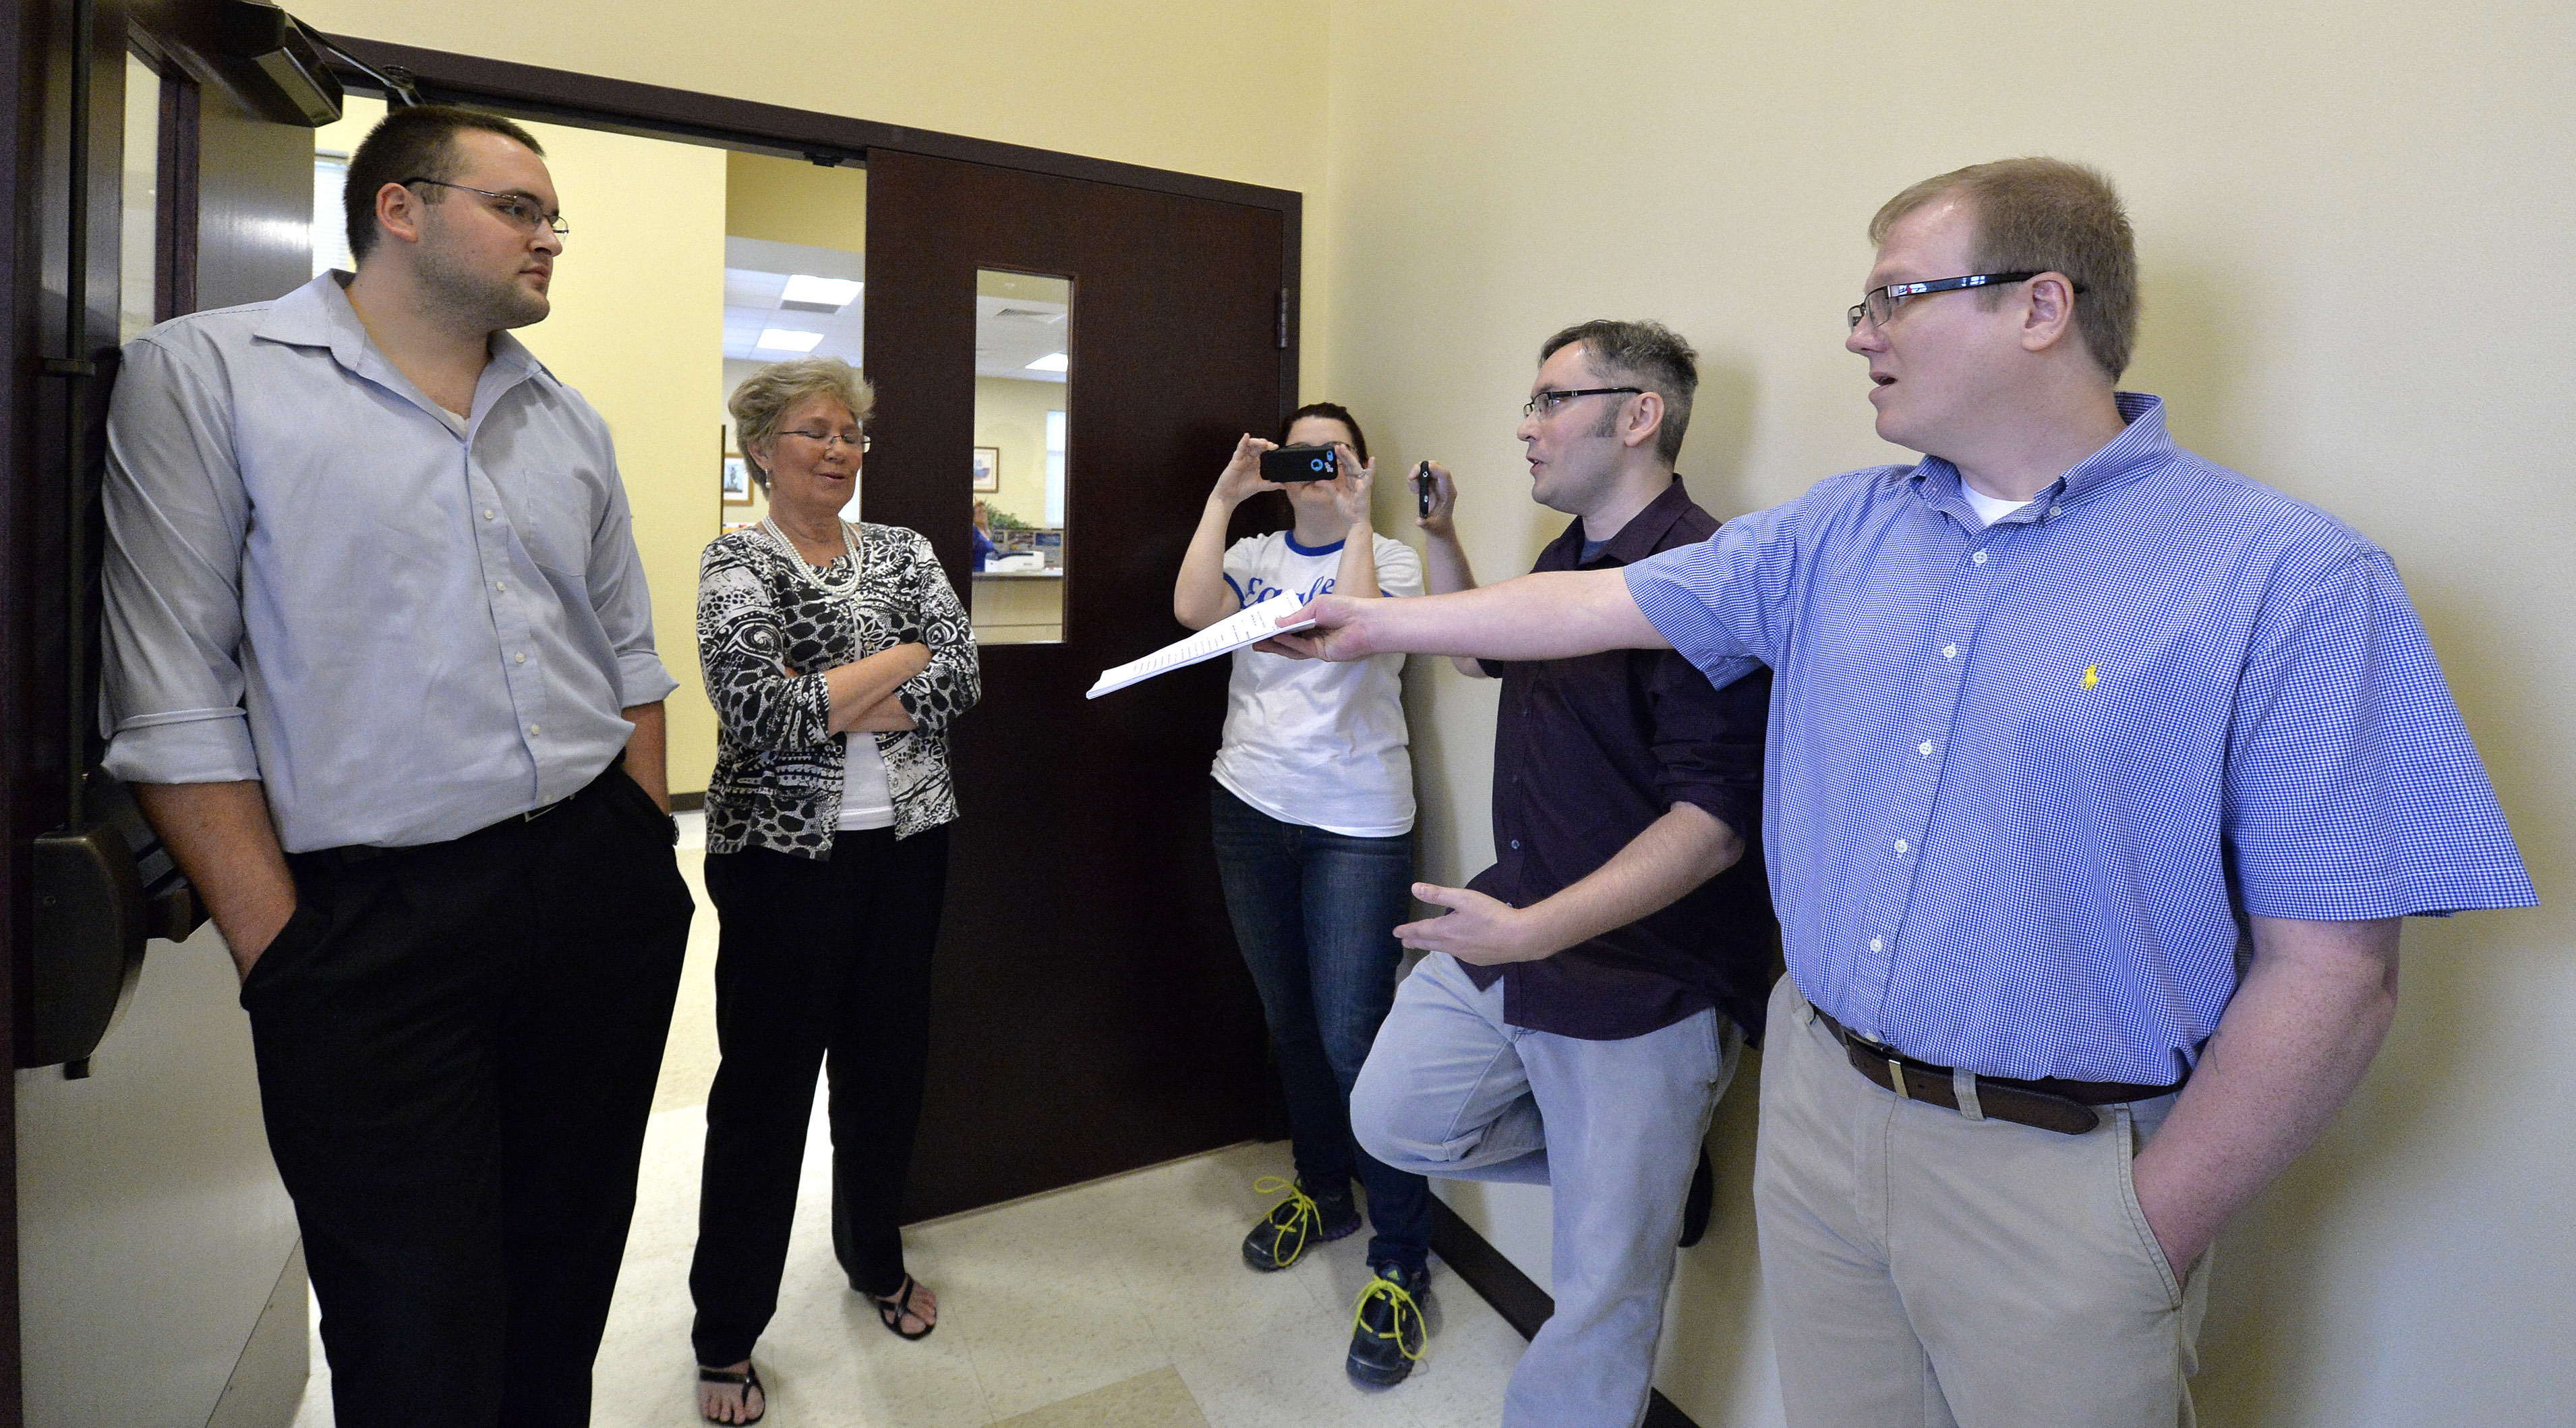 "File - In this Aug. 13, 2015, file photo, David Ermold, right, as he attempts to hand Rowan County clerks Nathan Davis, left, and Roberta Earley, second from left, a copy of the ruling from U.S. District Court Judge David Bunning, instructing the county to start issuing marriage licenses, in Morehead, Ky. Ermold filed to run for county clerk on Wednesday, Dec. 6, 2017, hoping to challenge Kim Davis, who two years ago told him ""God's authority"" prohibited her from complying with a U.S. Supreme Court decision that effectively legalized gay marriage nationwide. (AP Photo/Timothy D. Easley, File)"